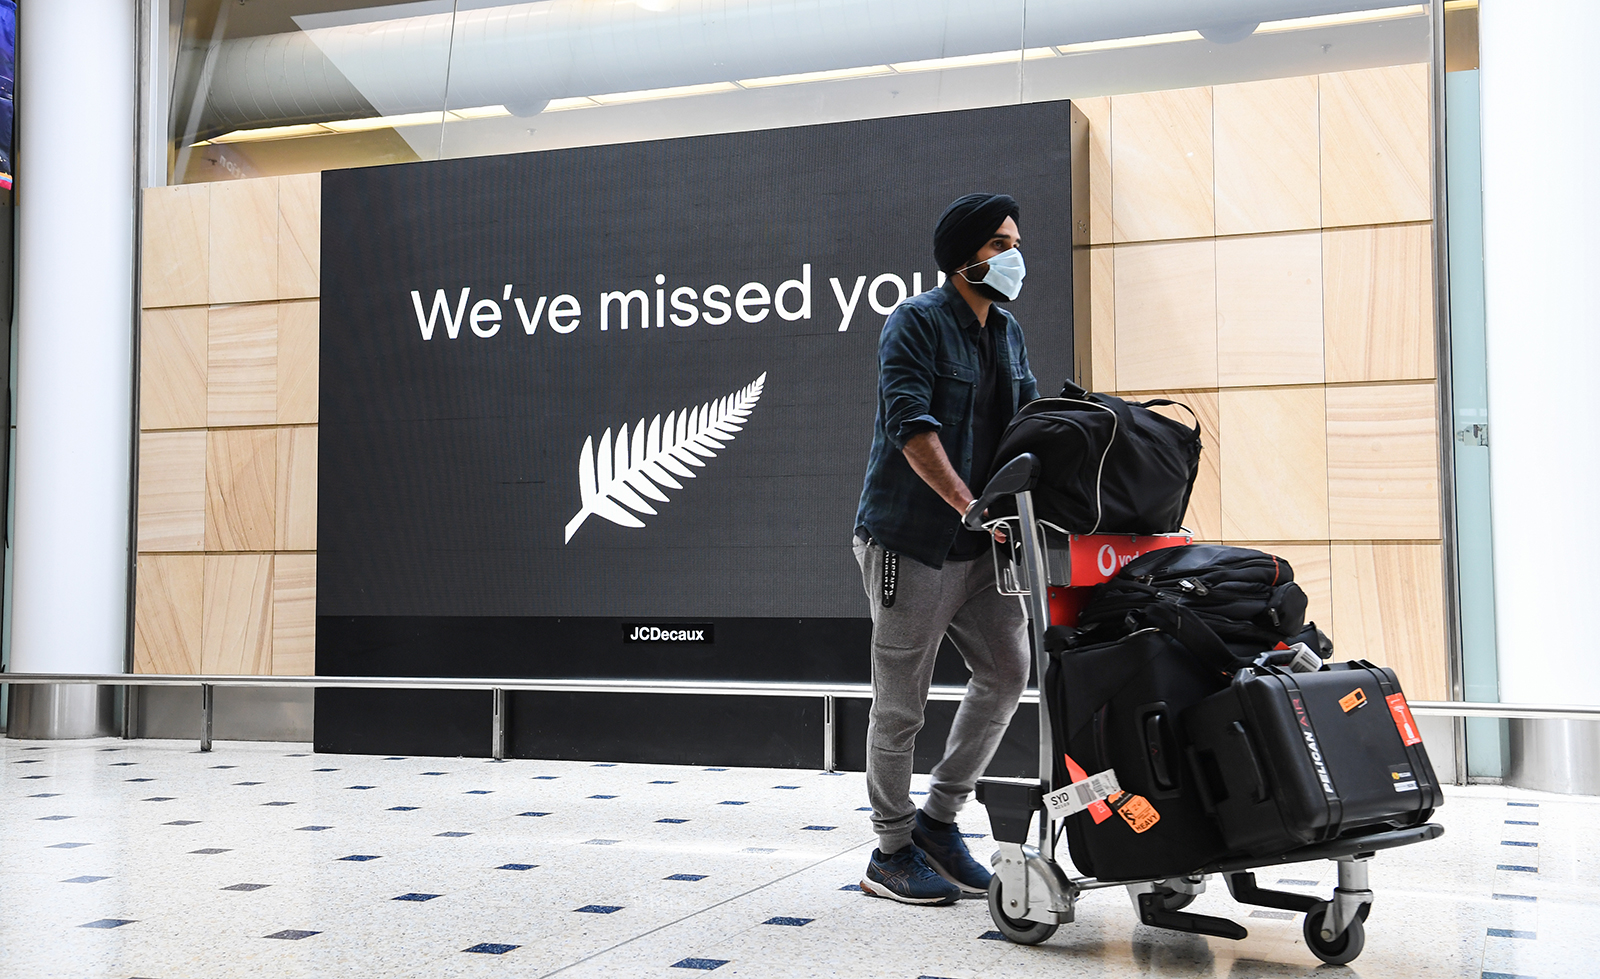 A passenger from Auckland, New Zealand arrives at Sydney's Kingsford Smith Airport in Sydney, Australia, on Oct. 16.